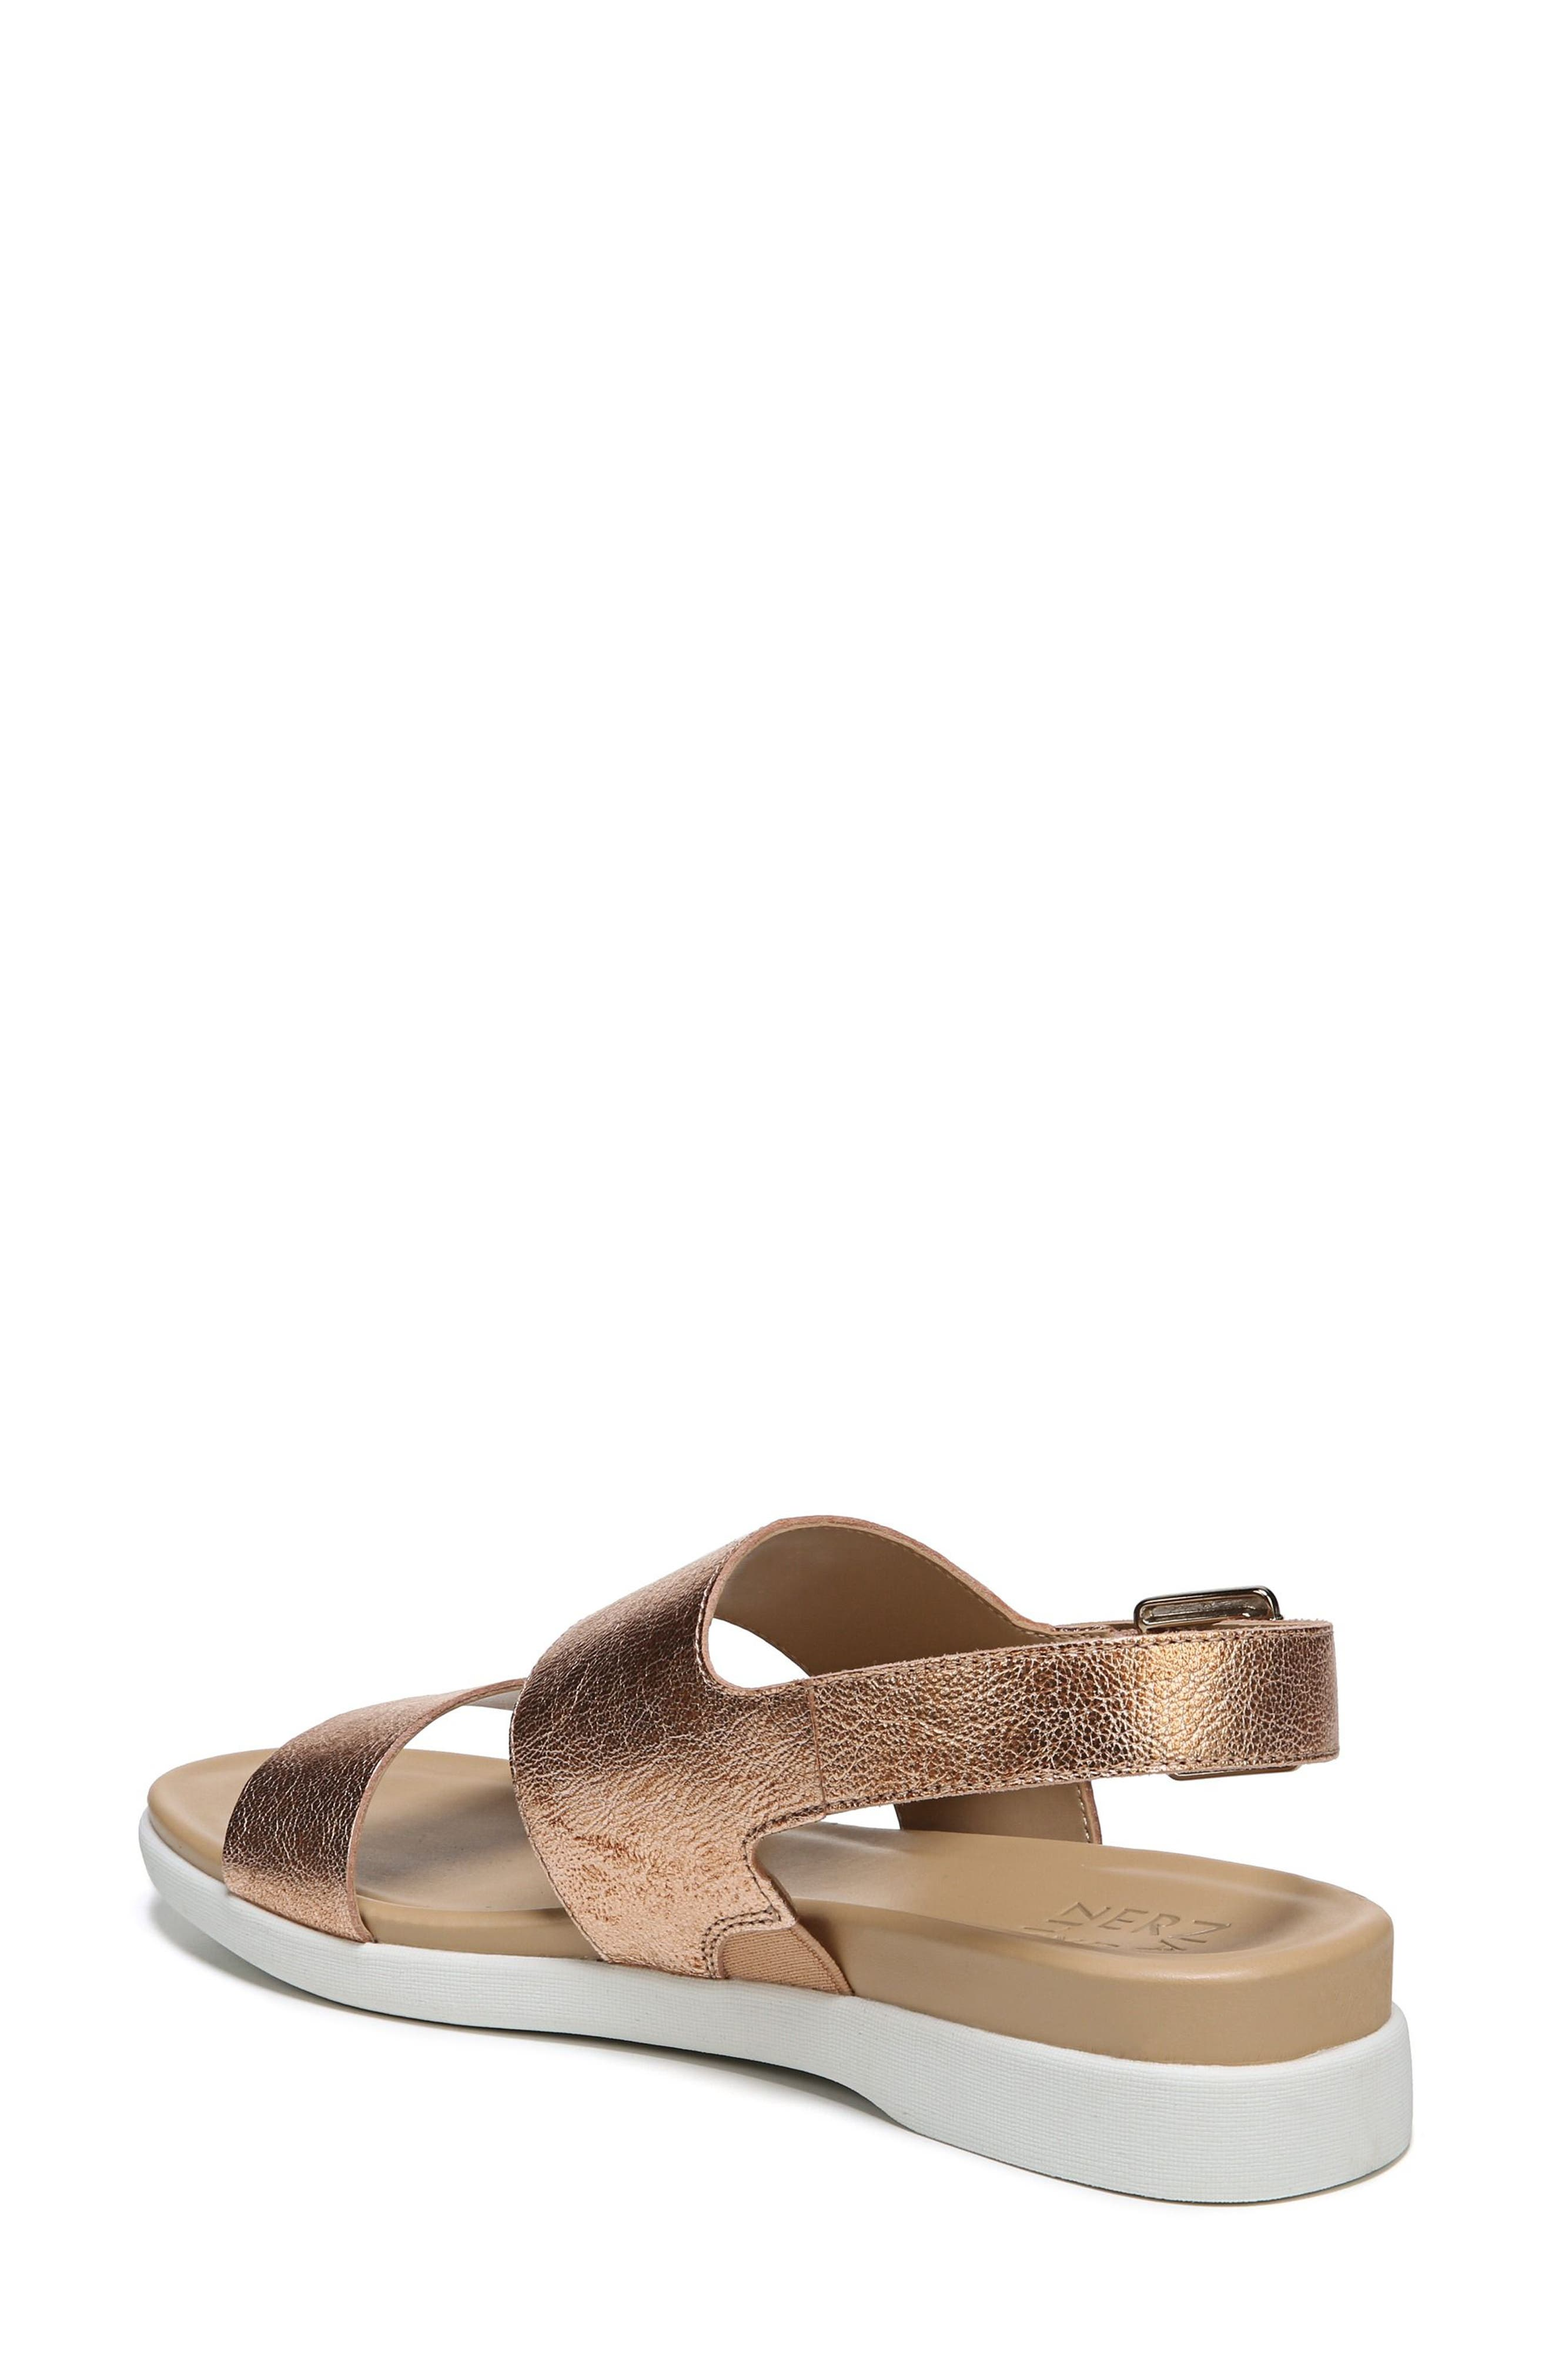 Emory Wedge Sandal,                             Alternate thumbnail 2, color,                             Copper Leather